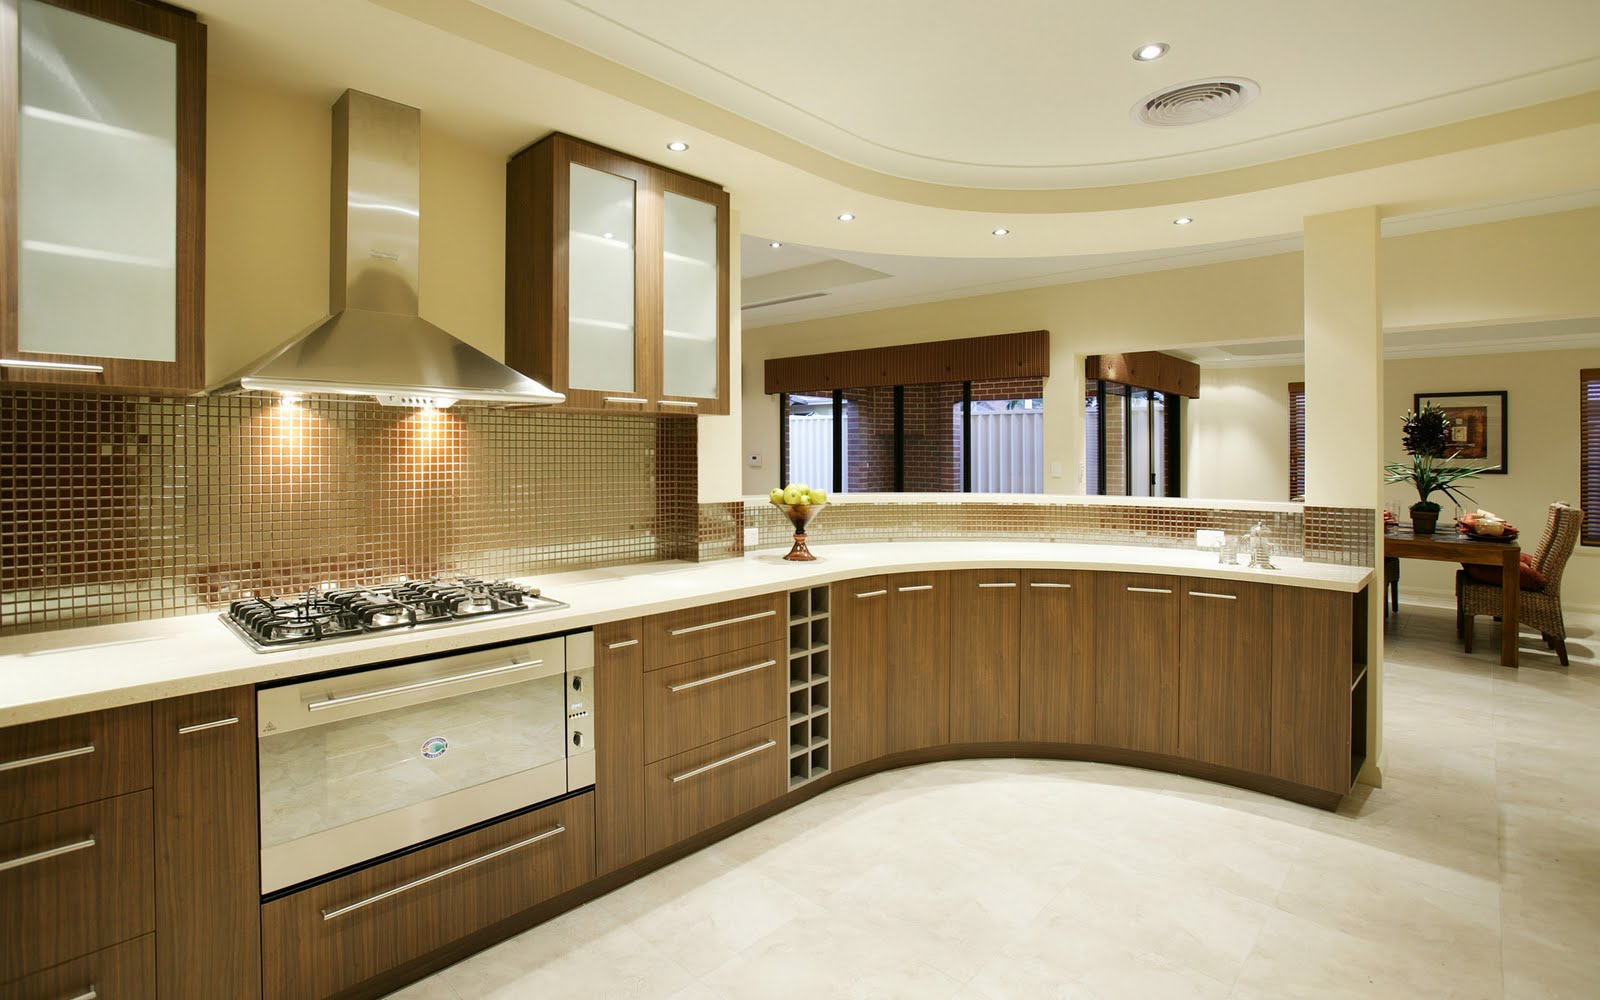 Images Of Beautiful Kitchens Gorgeous Of Kitchen Design Ideas Photo